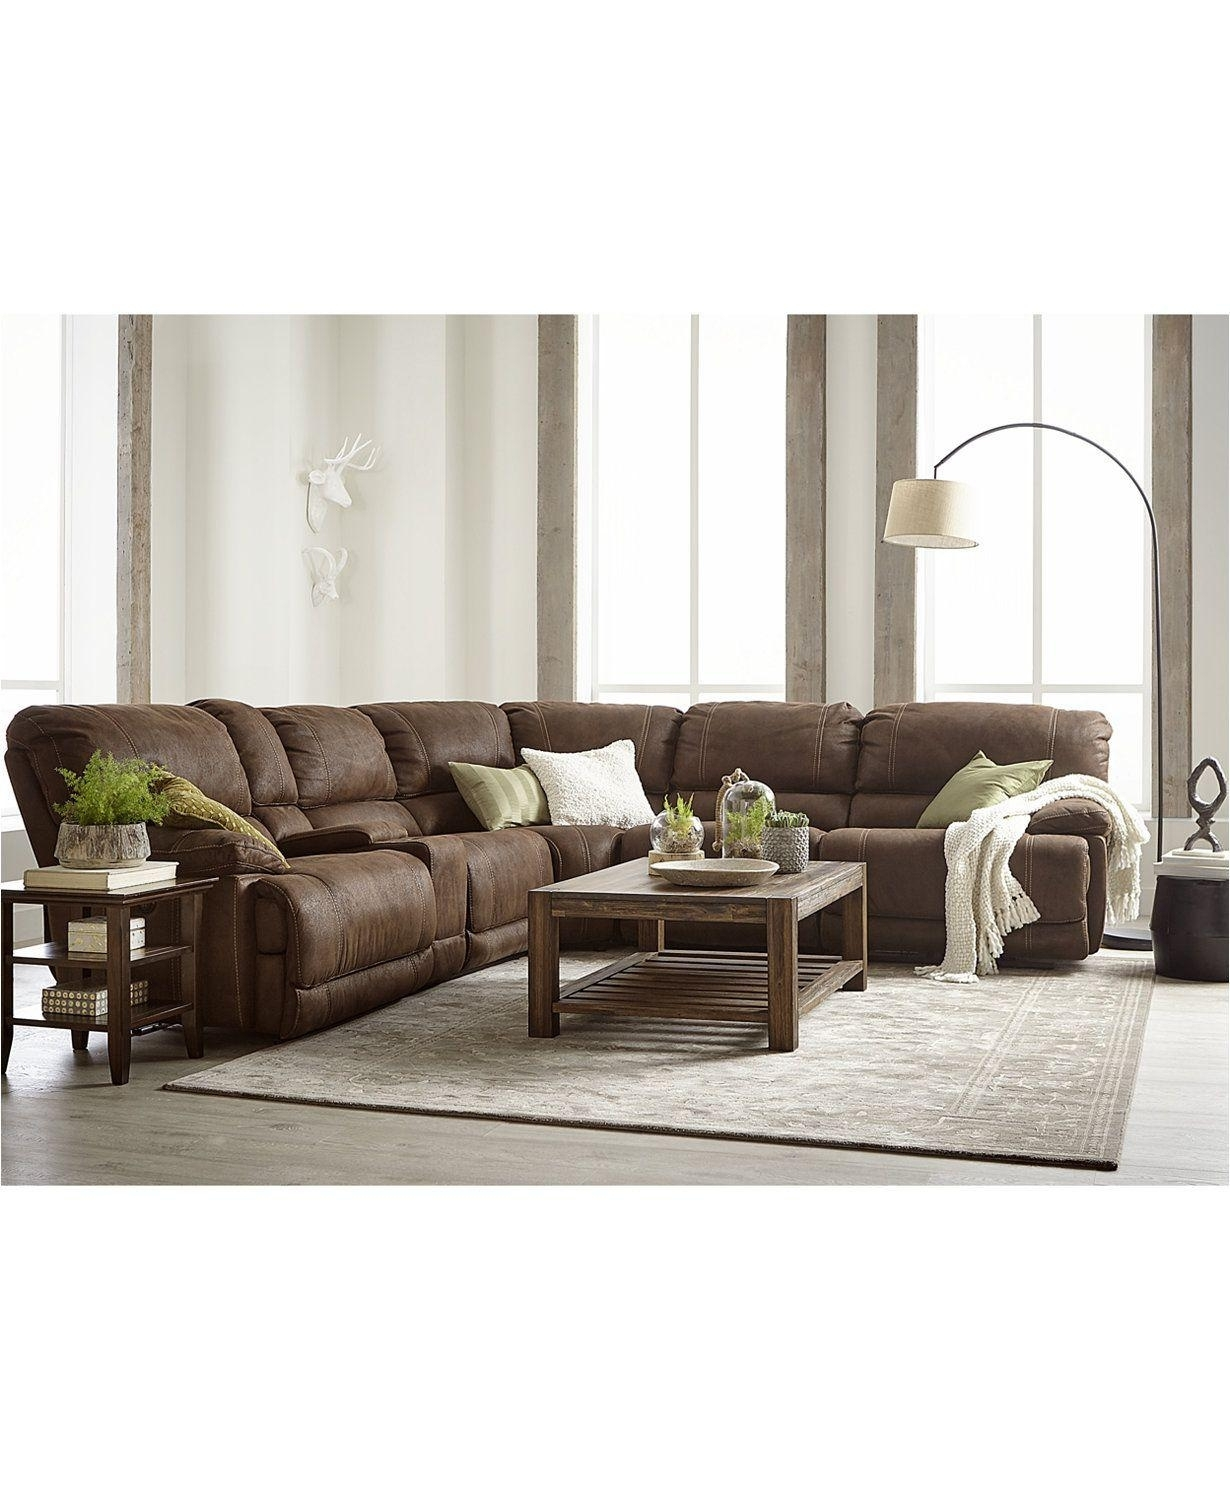 Fabric Sectional Sofa With Power Recliner | Baci Living Room For Declan 3 Piece Power Reclining Sectionals With Right Facing Console Loveseat (View 21 of 25)